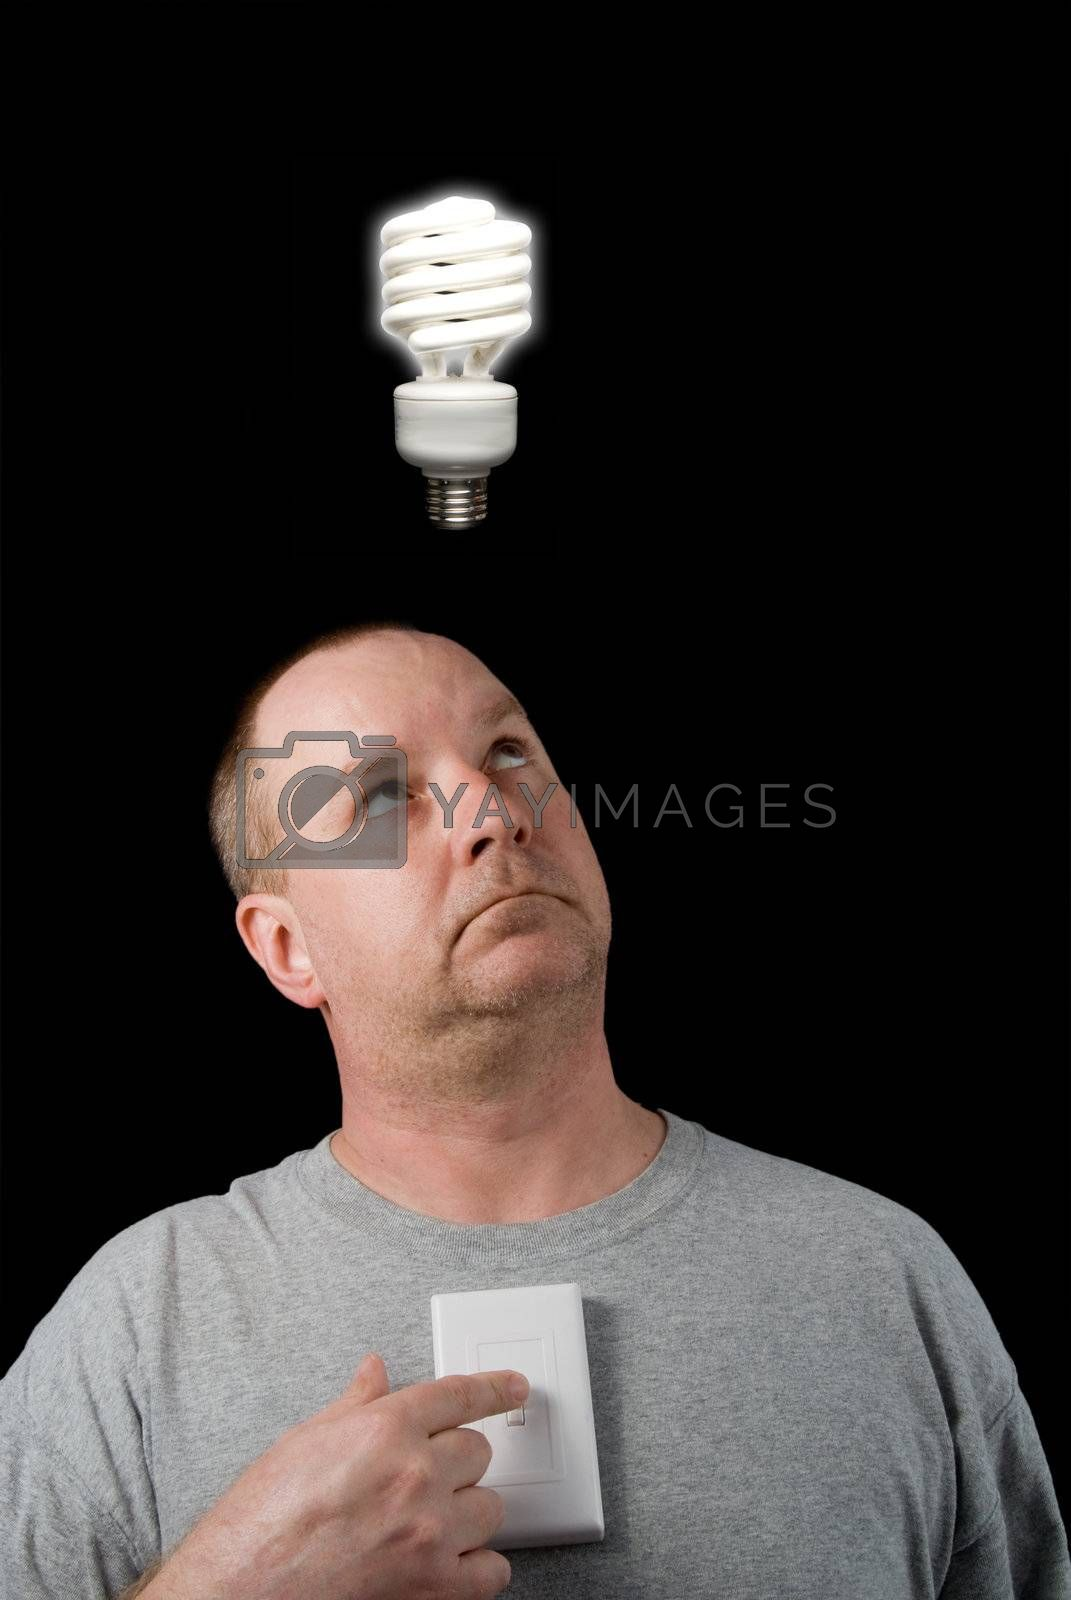 A man looking at a lighted lightbulb over his head.